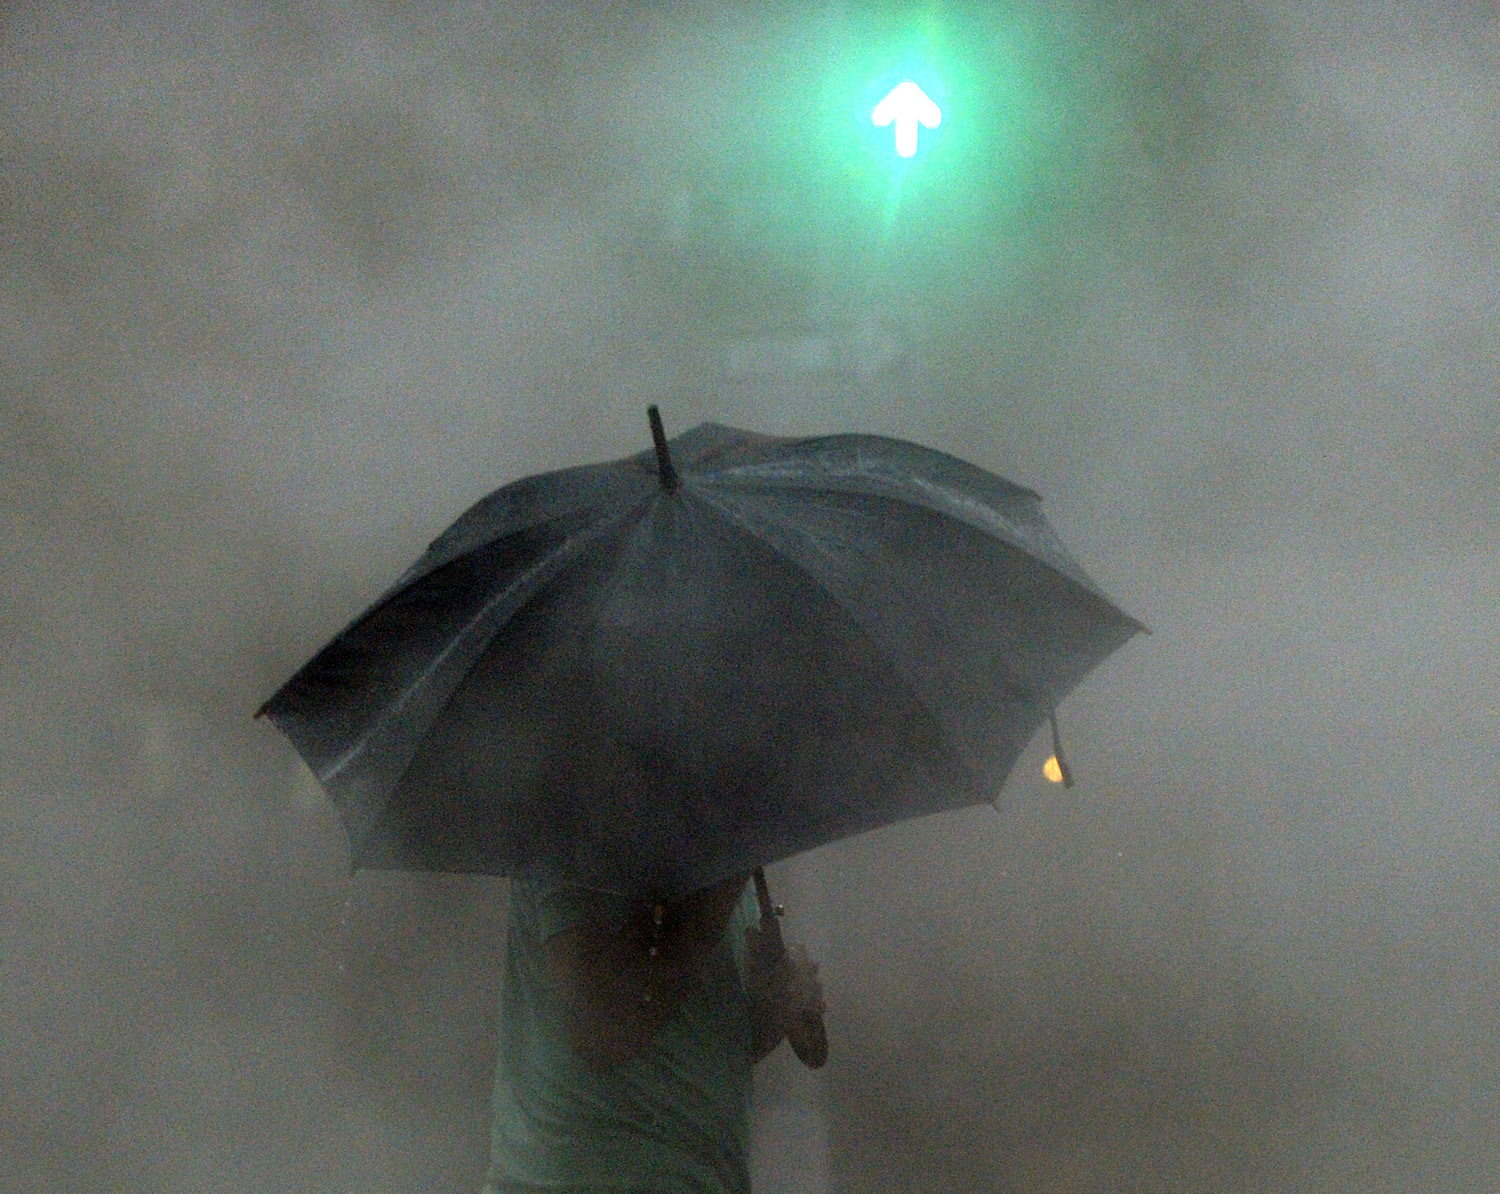 August 28, 2011, New York, NY. A man walks in the early morning rain.